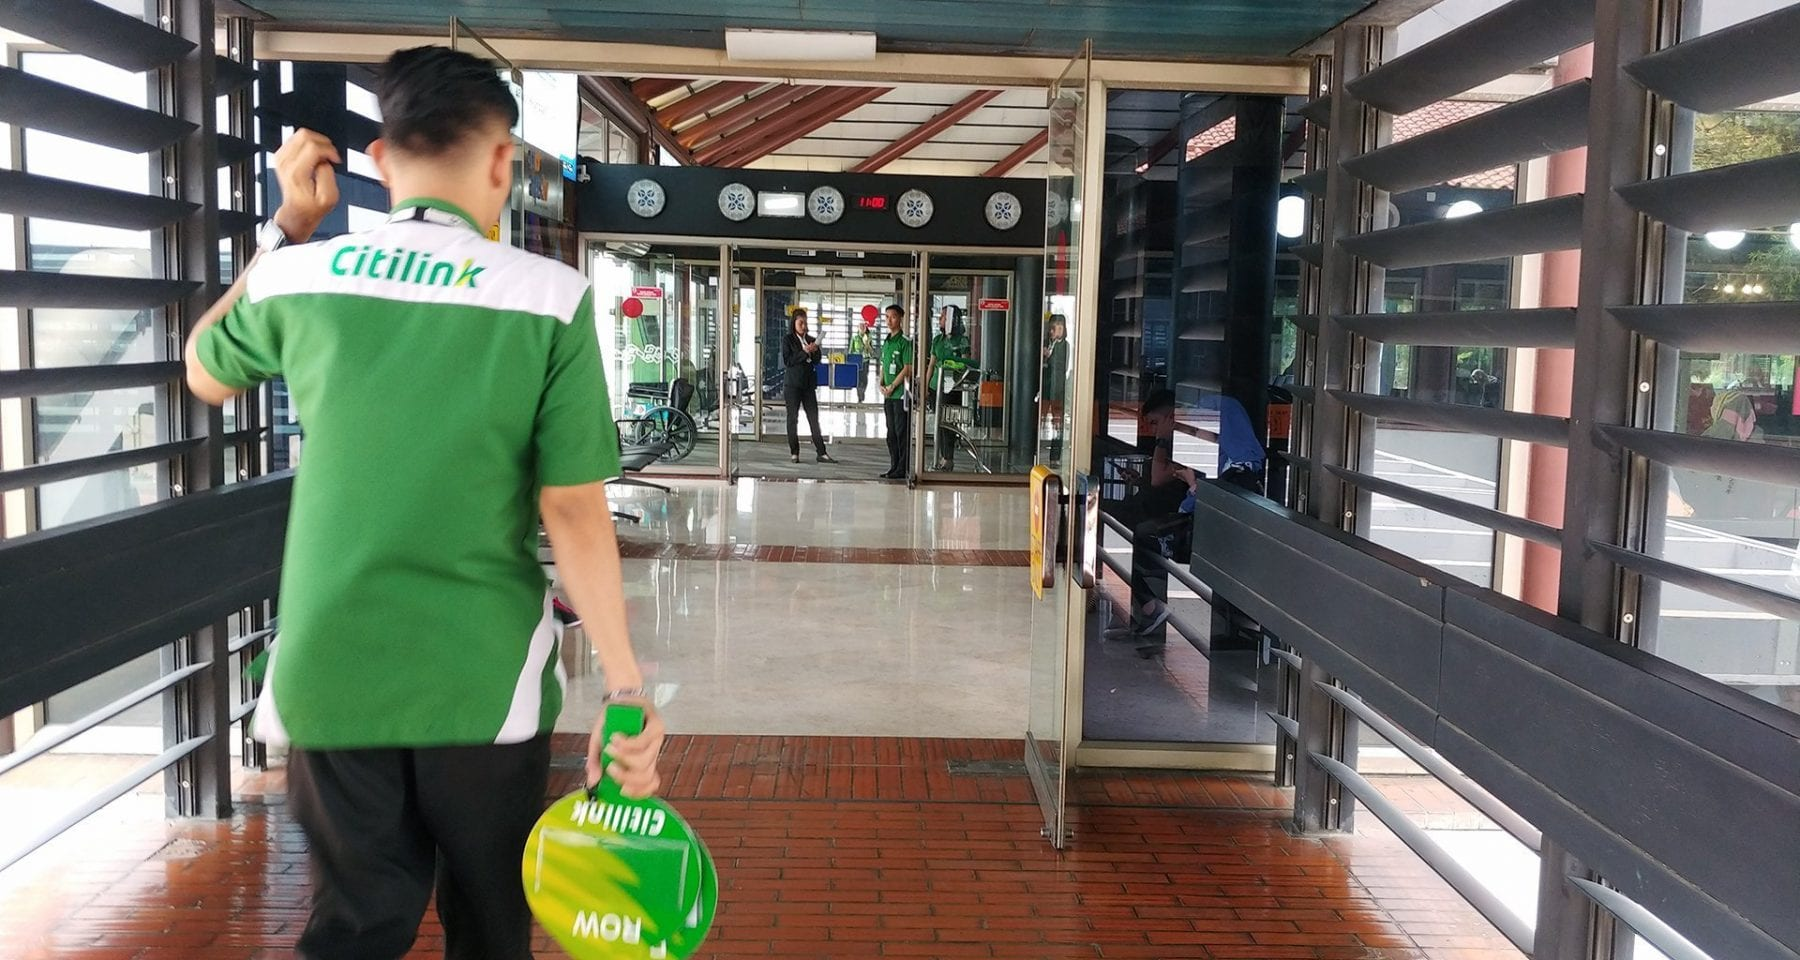 citilink priority boarding